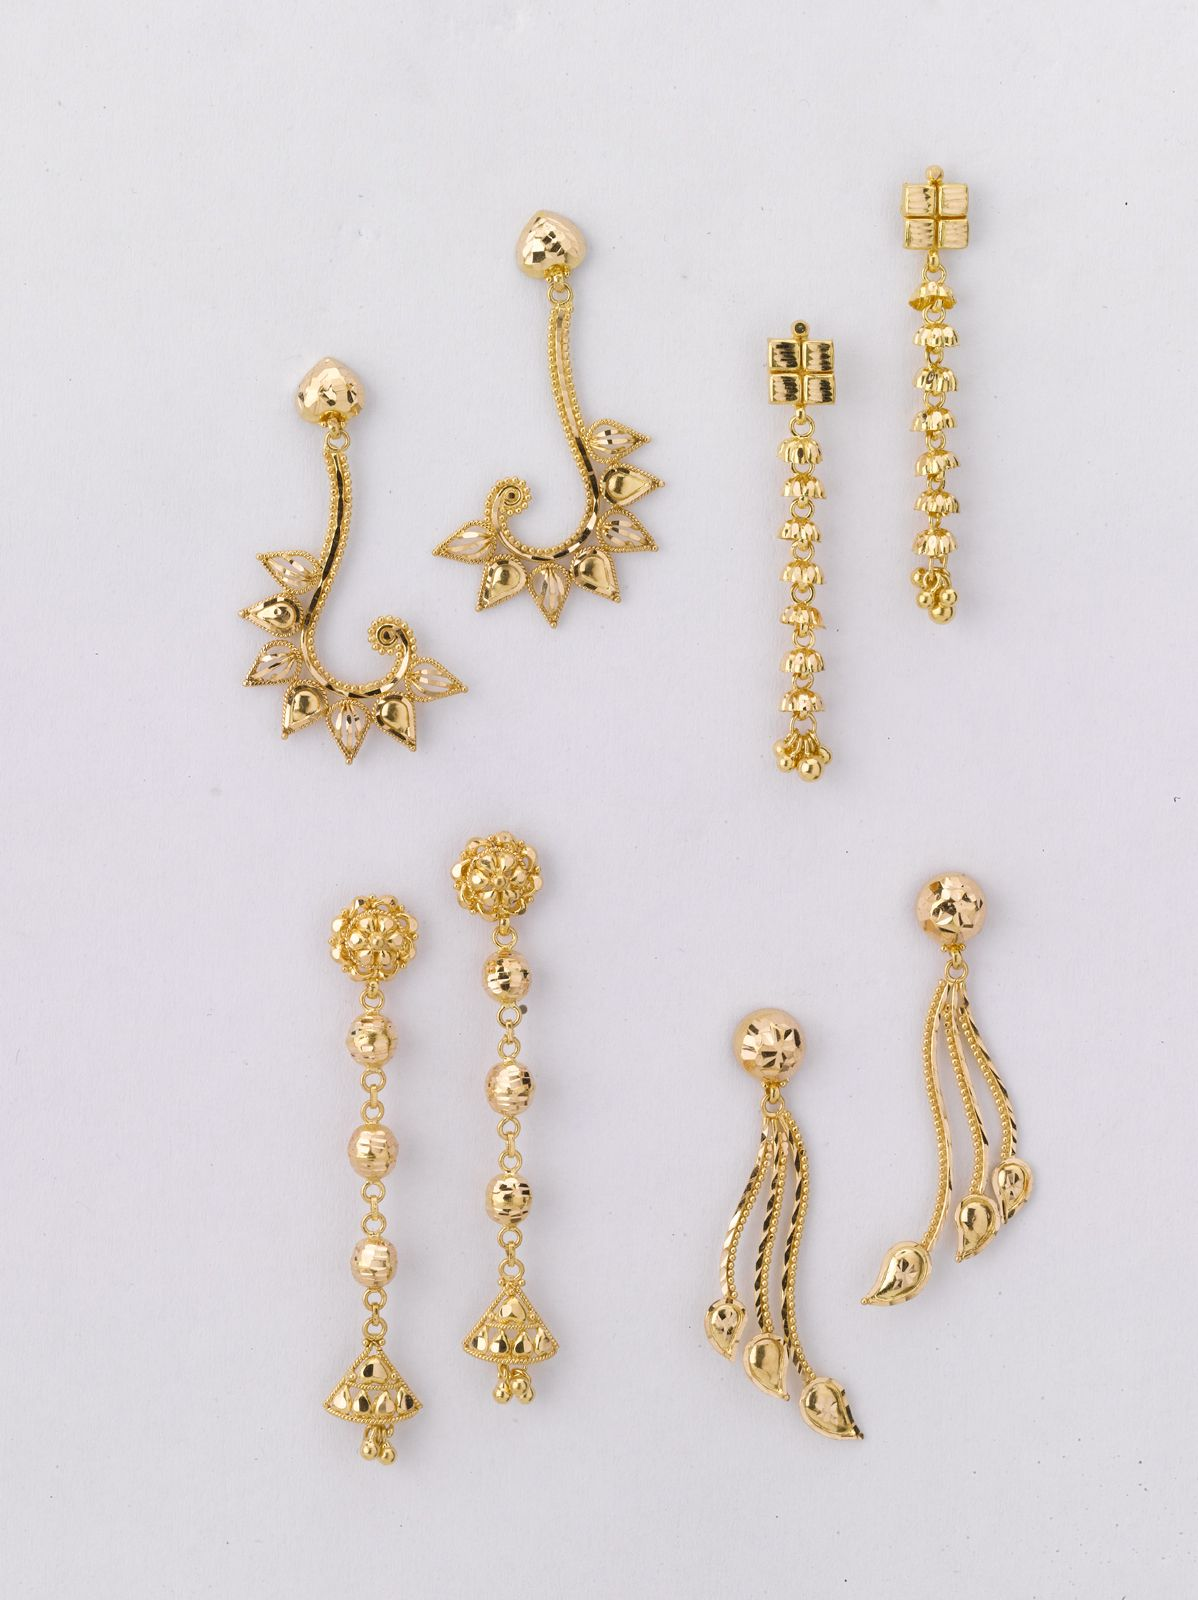 Earring 18 Prices From Left To Right A 4 500 Gm Rs 16100 B 3 12600 C 800 13520 D 100 14750